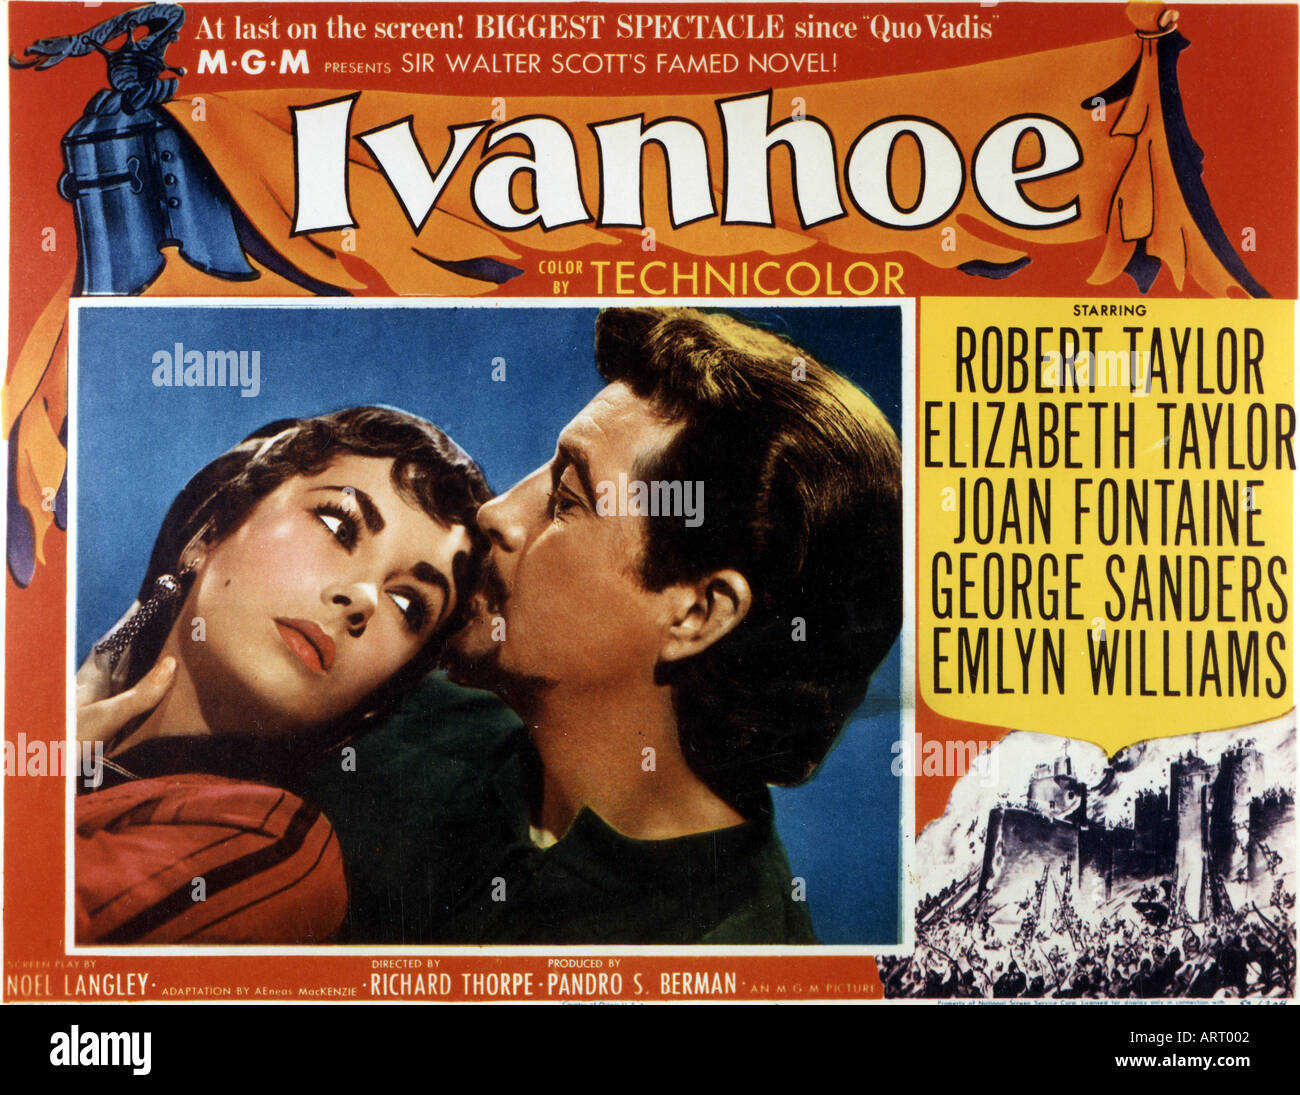 IVANHOE poster for 1952 film with Elizabeth Taylor and Robert Taylor - Stock Image